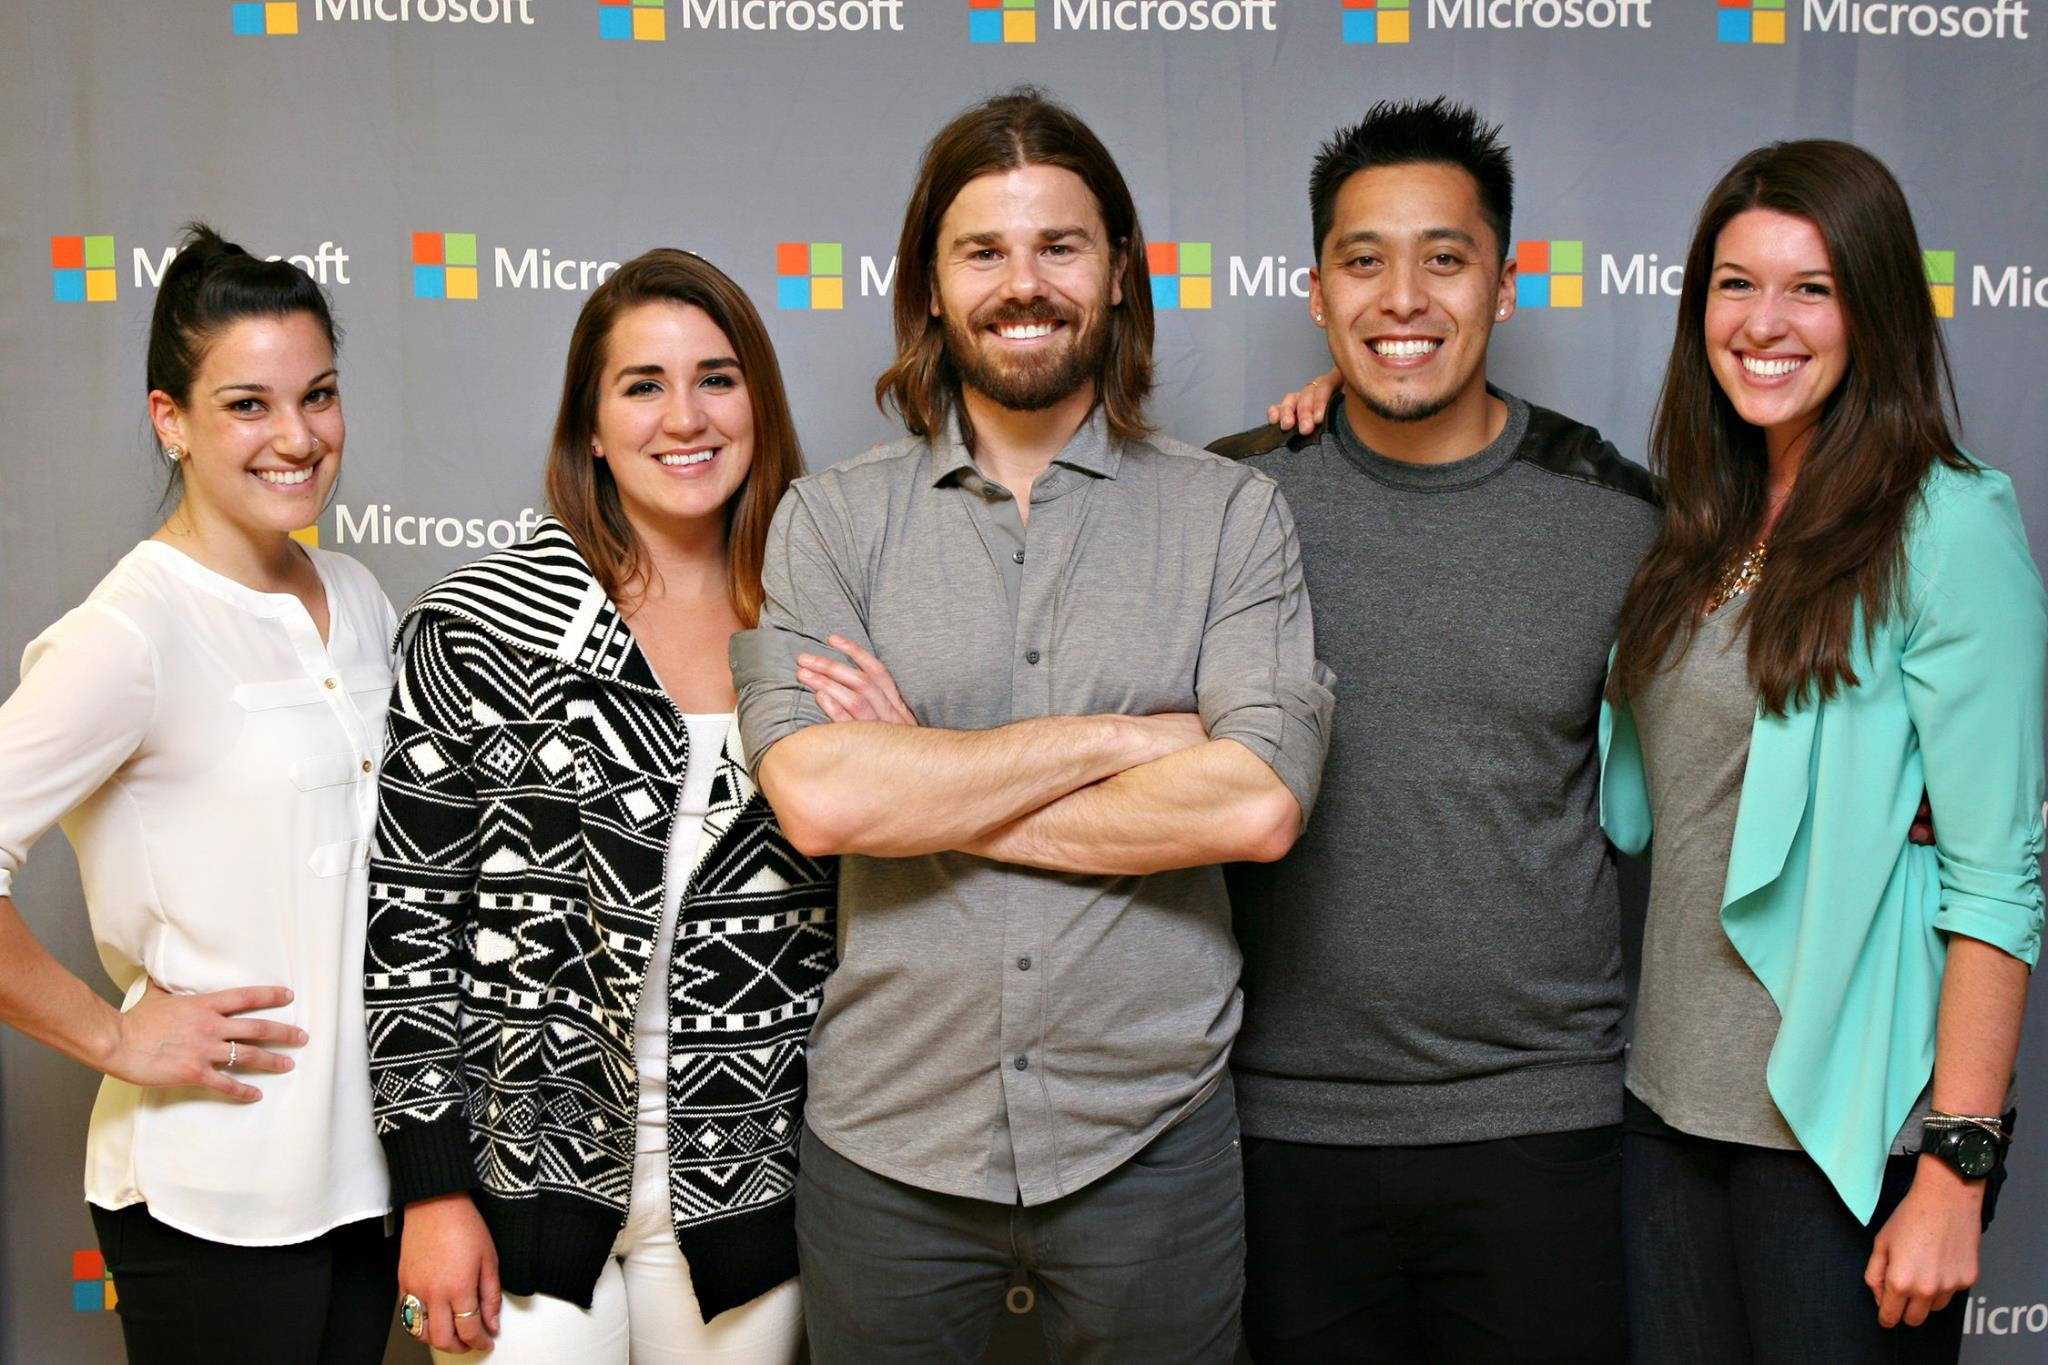 Gravity Payments CEO at Microsoft event